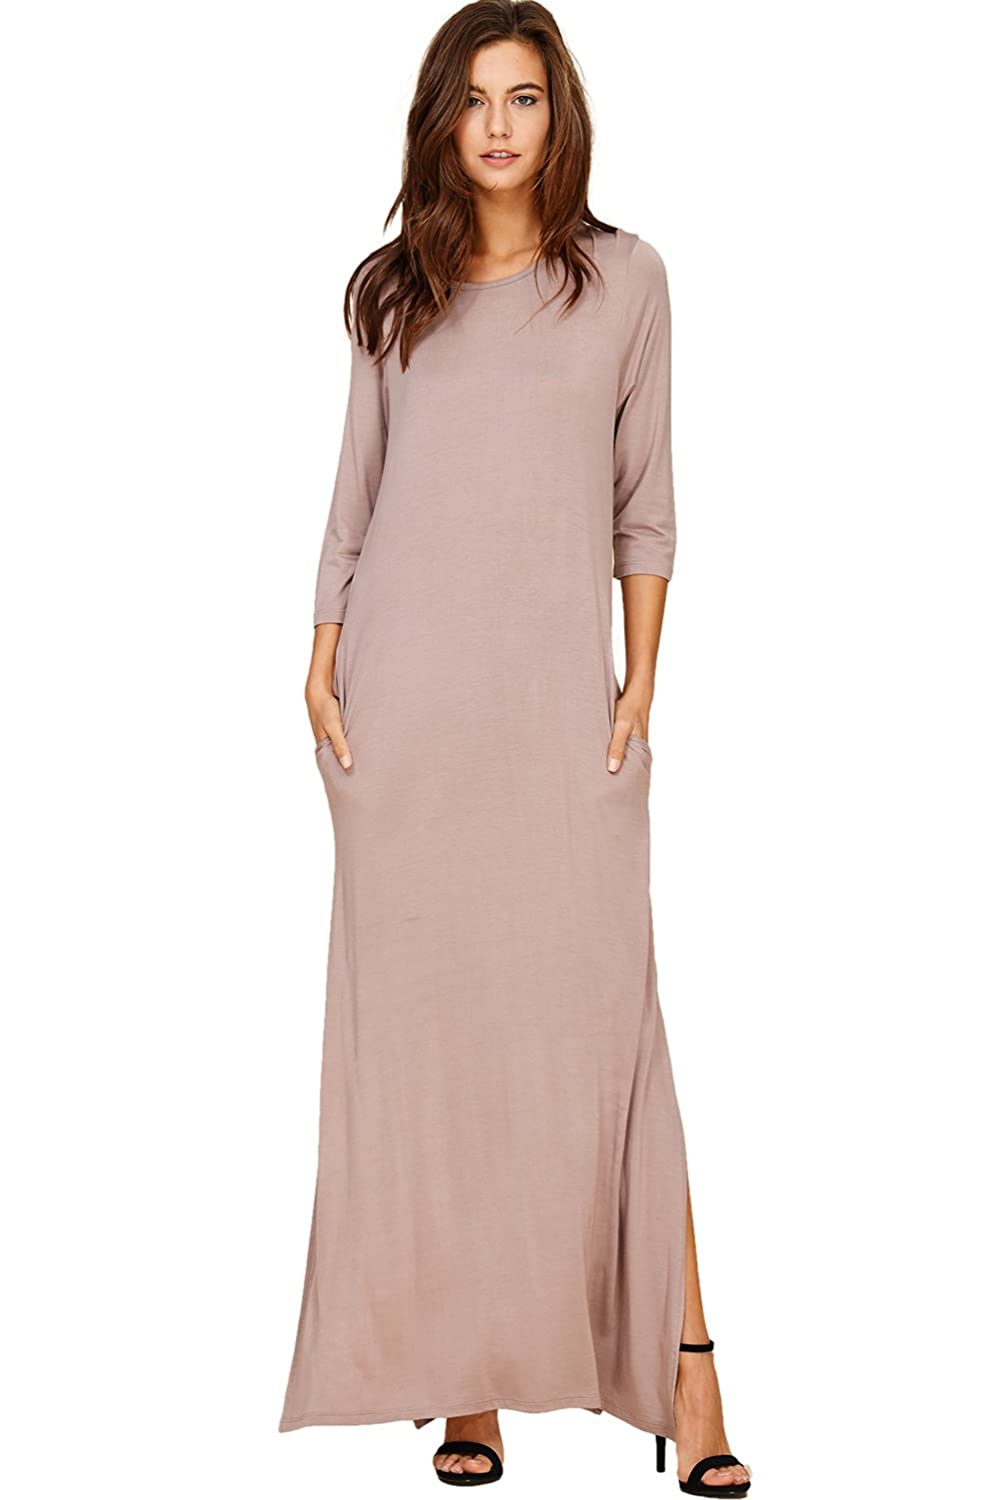 8b06227c338339 Annabelle Women s 3 4 Sleeve Summer Beach Cover Maxi Dress with Pockets  Small Taupe Grey D5296 at Amazon Women s Clothing store